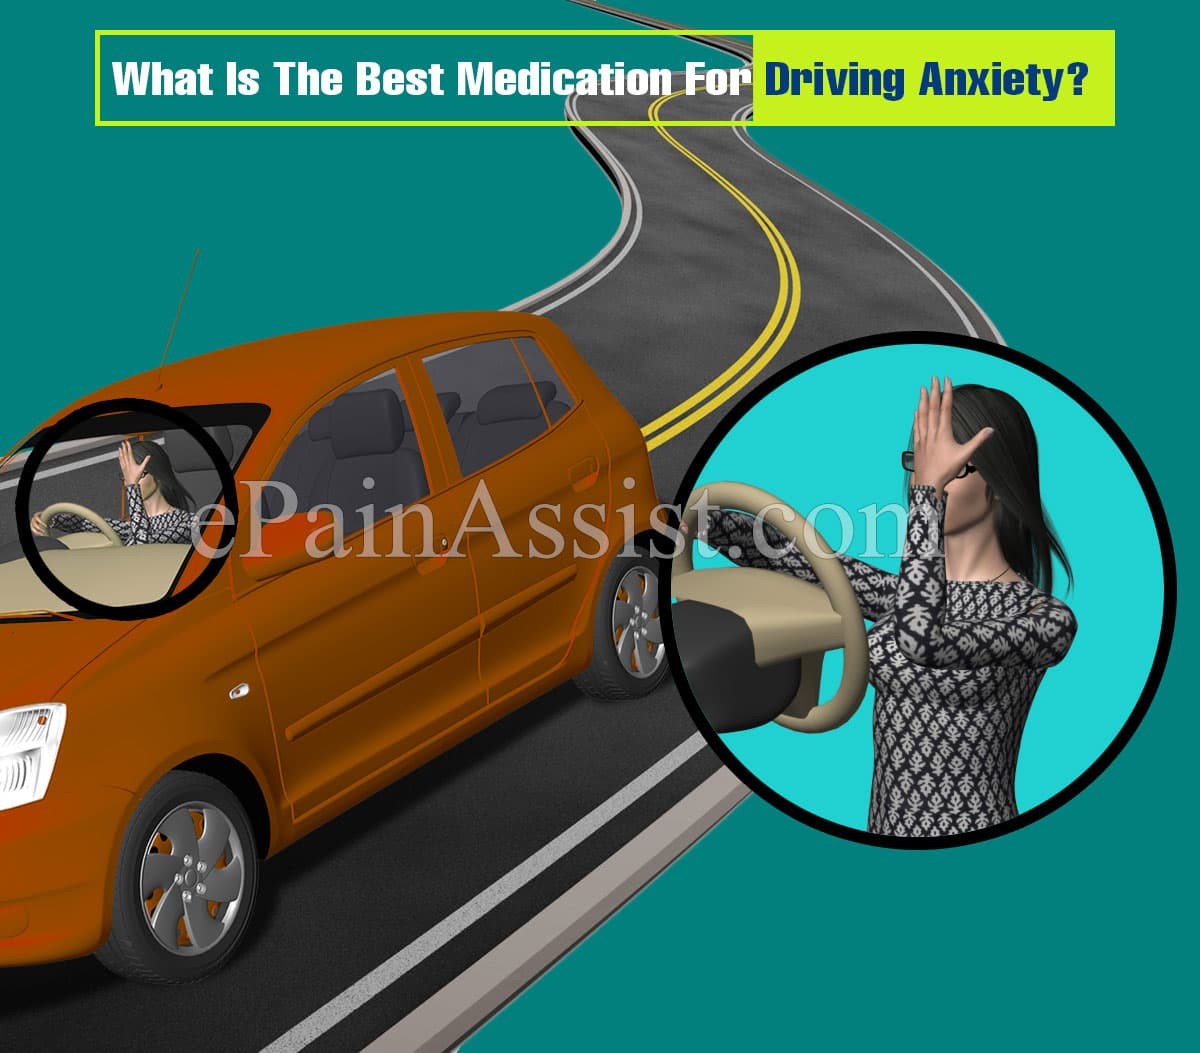 What Is The Best Medication For Driving Anxiety?